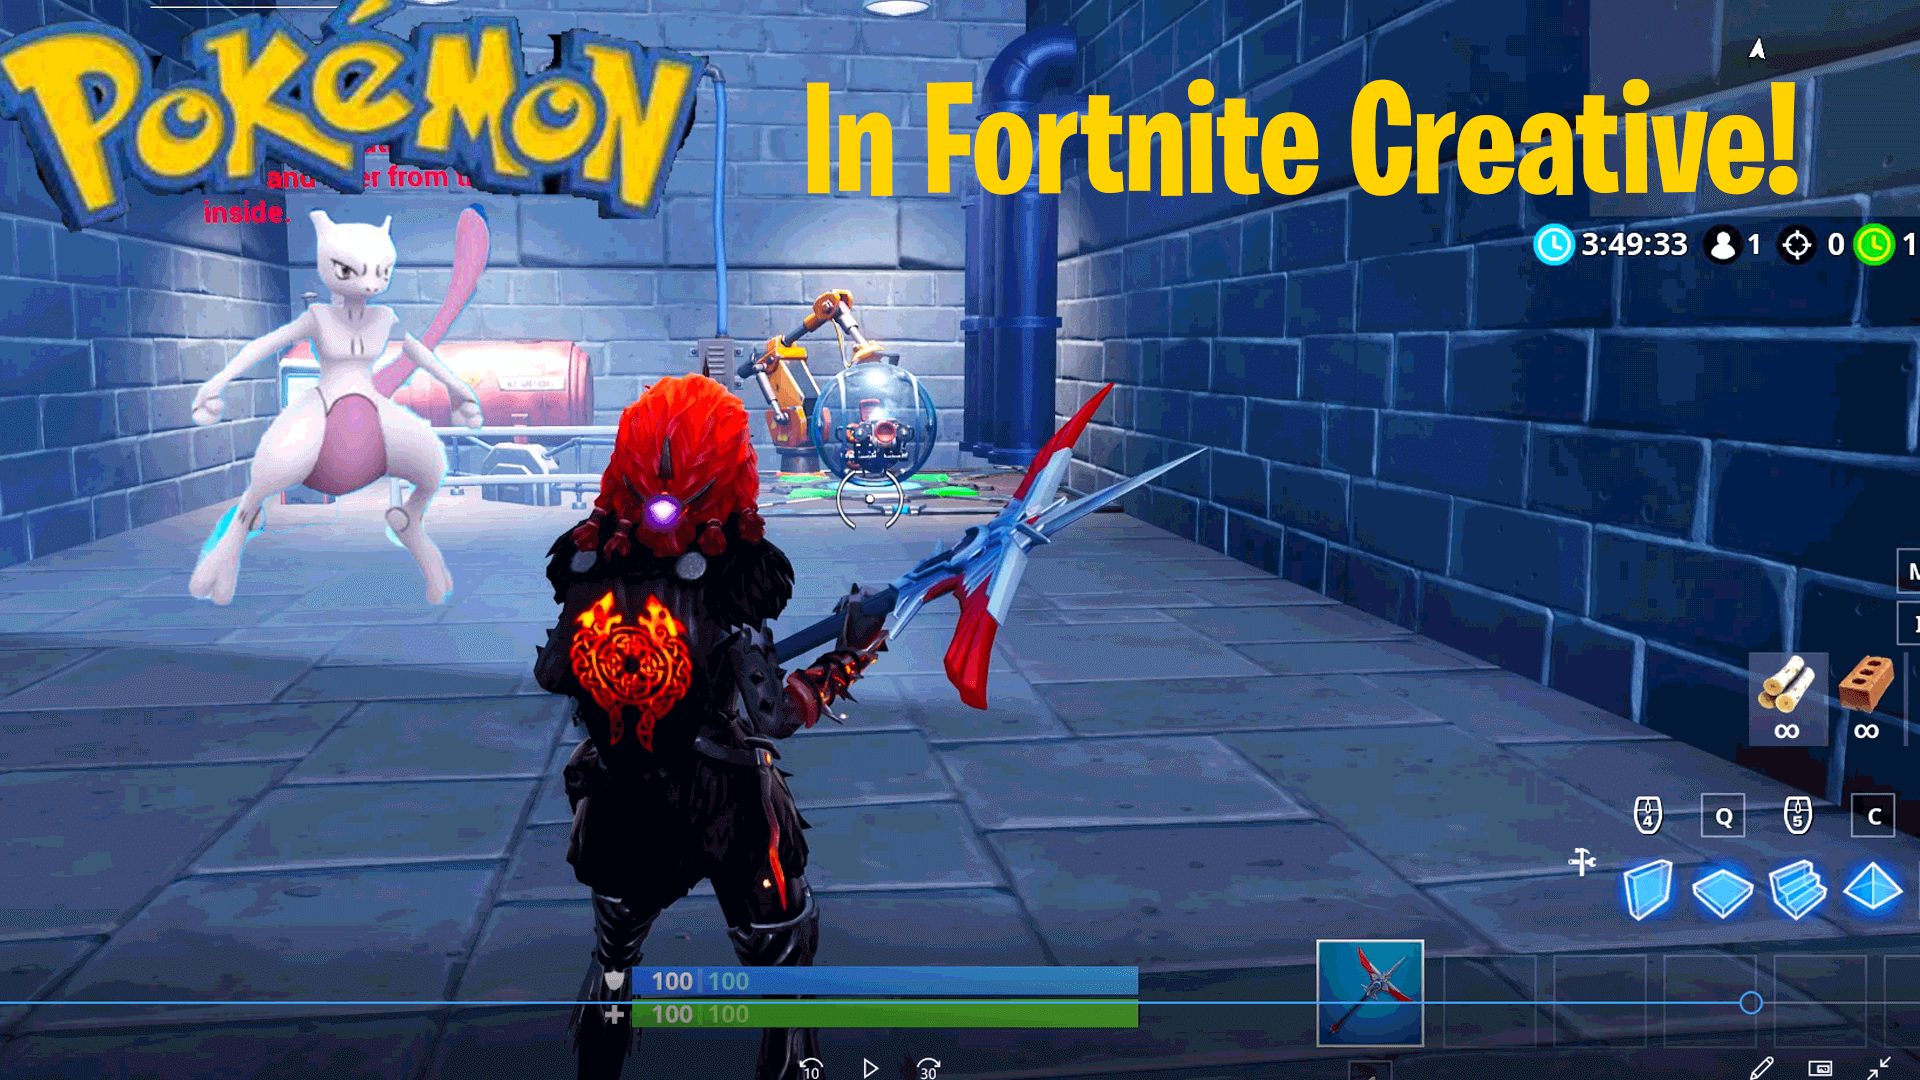 1V1 ARENA! (3 0) - Fortnite Creative Codes - Dropnite com